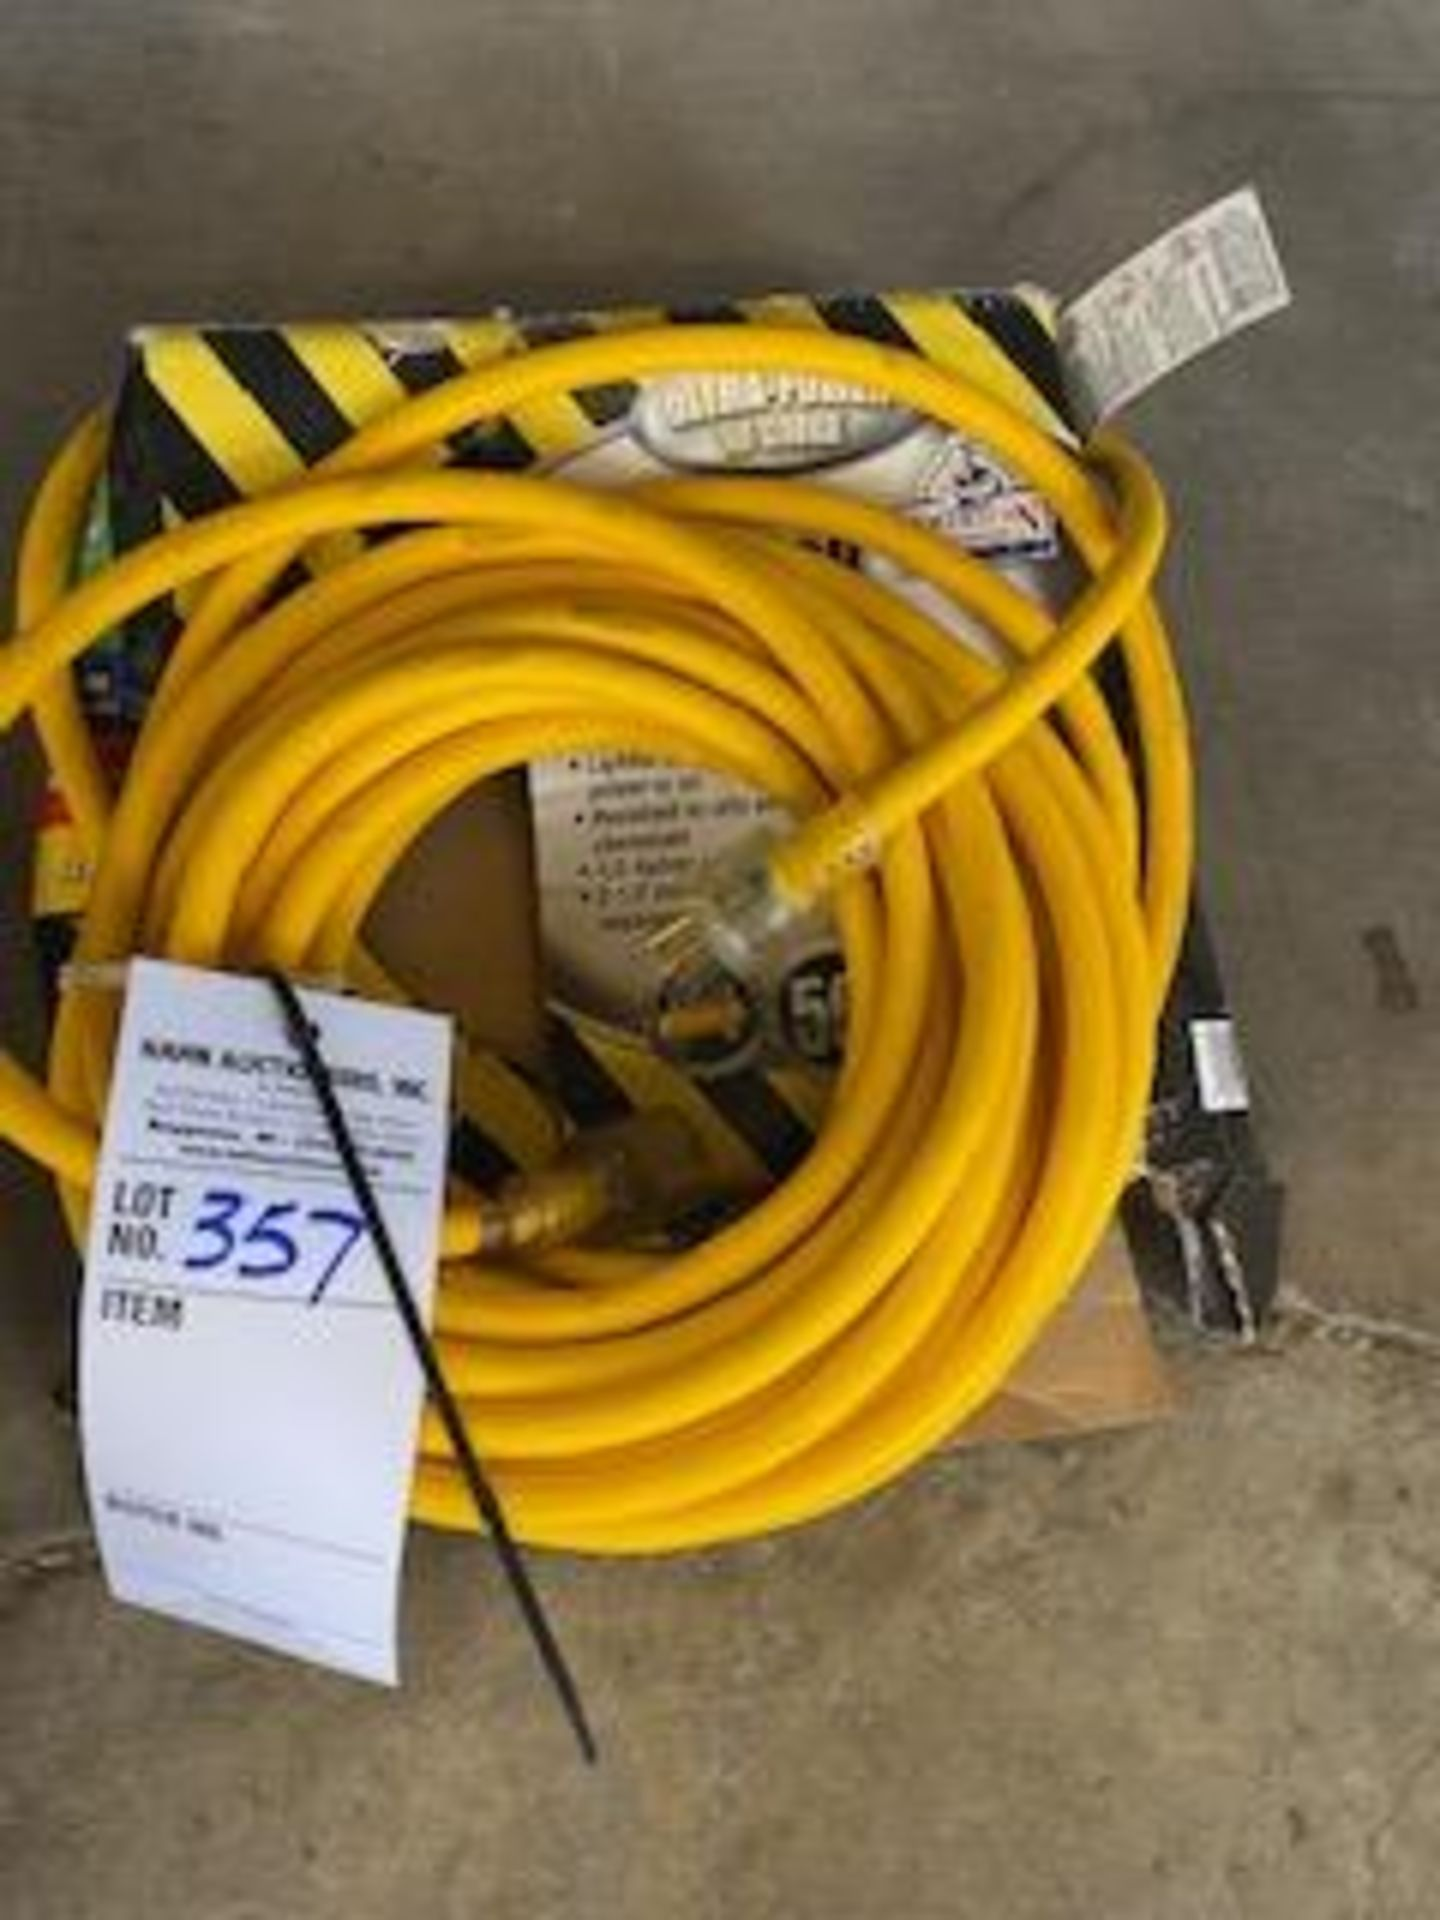 Lot 357 - NEW 10GAUGE EXTENSION CORD